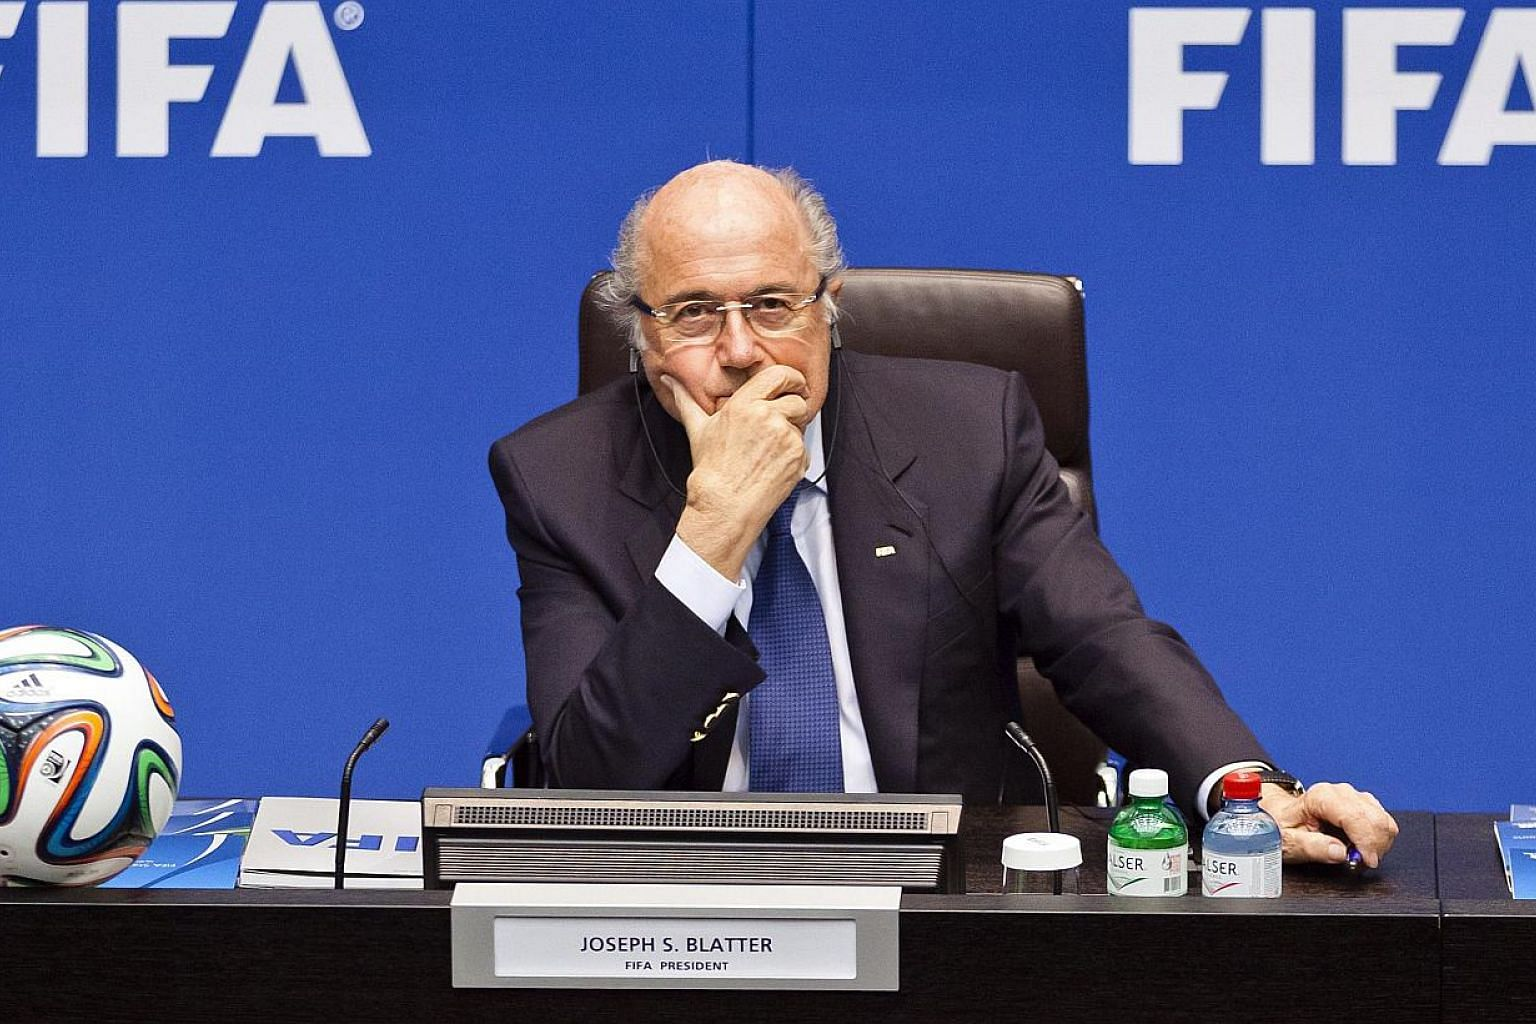 Fifa president Sepp Blatter kept out of sight for the second successive day on Thursday, May 28, 2015, when he failed to show up at a medical conference the day after world football's governing body was plunged into another corruption scandal. -- PHO